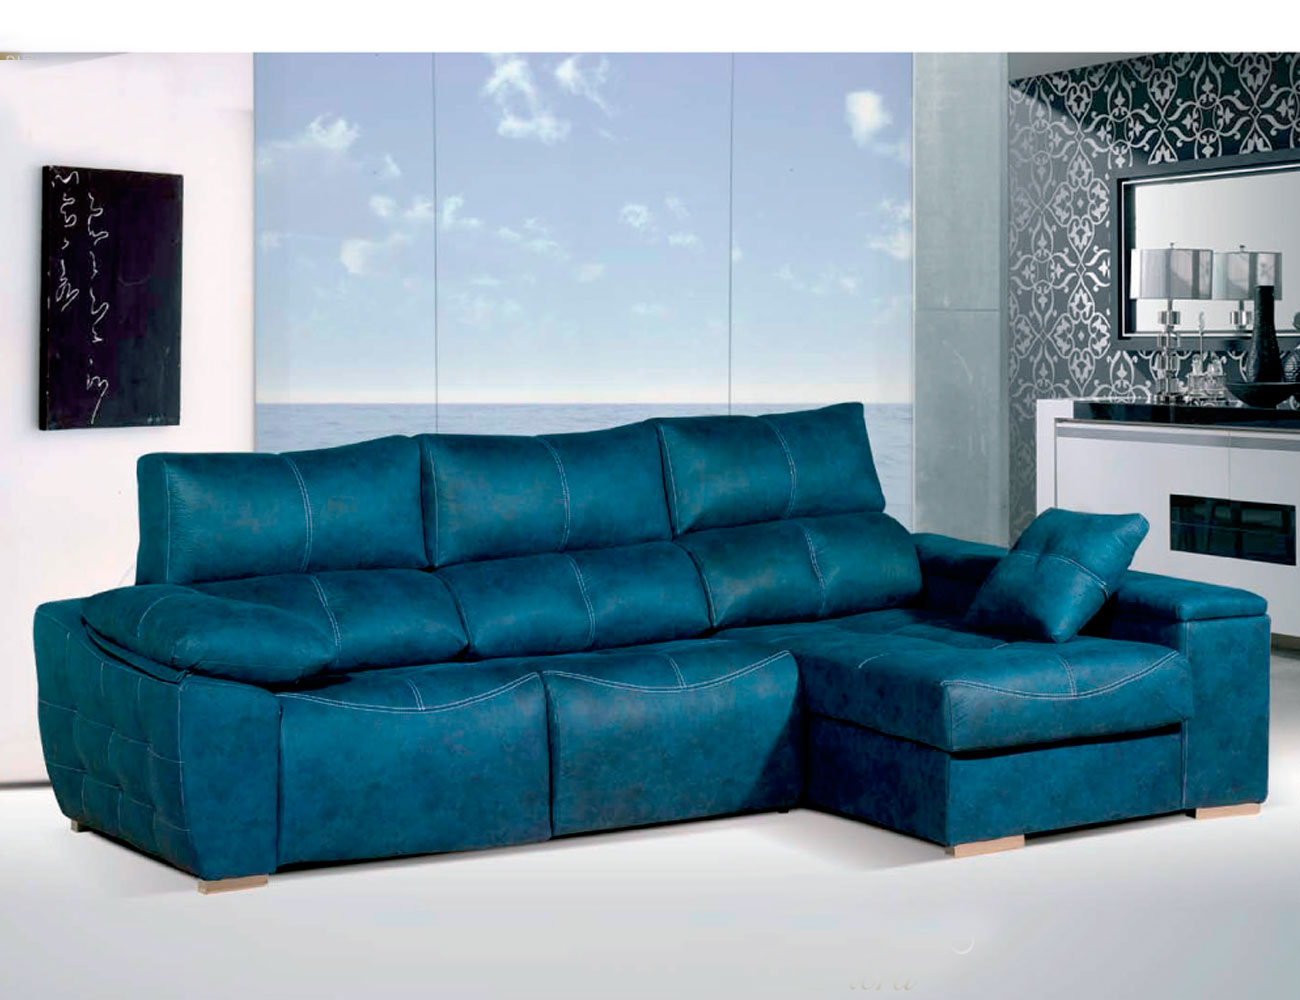 Sofa chaiselongue relax 2 motores anti manchas turquesa42